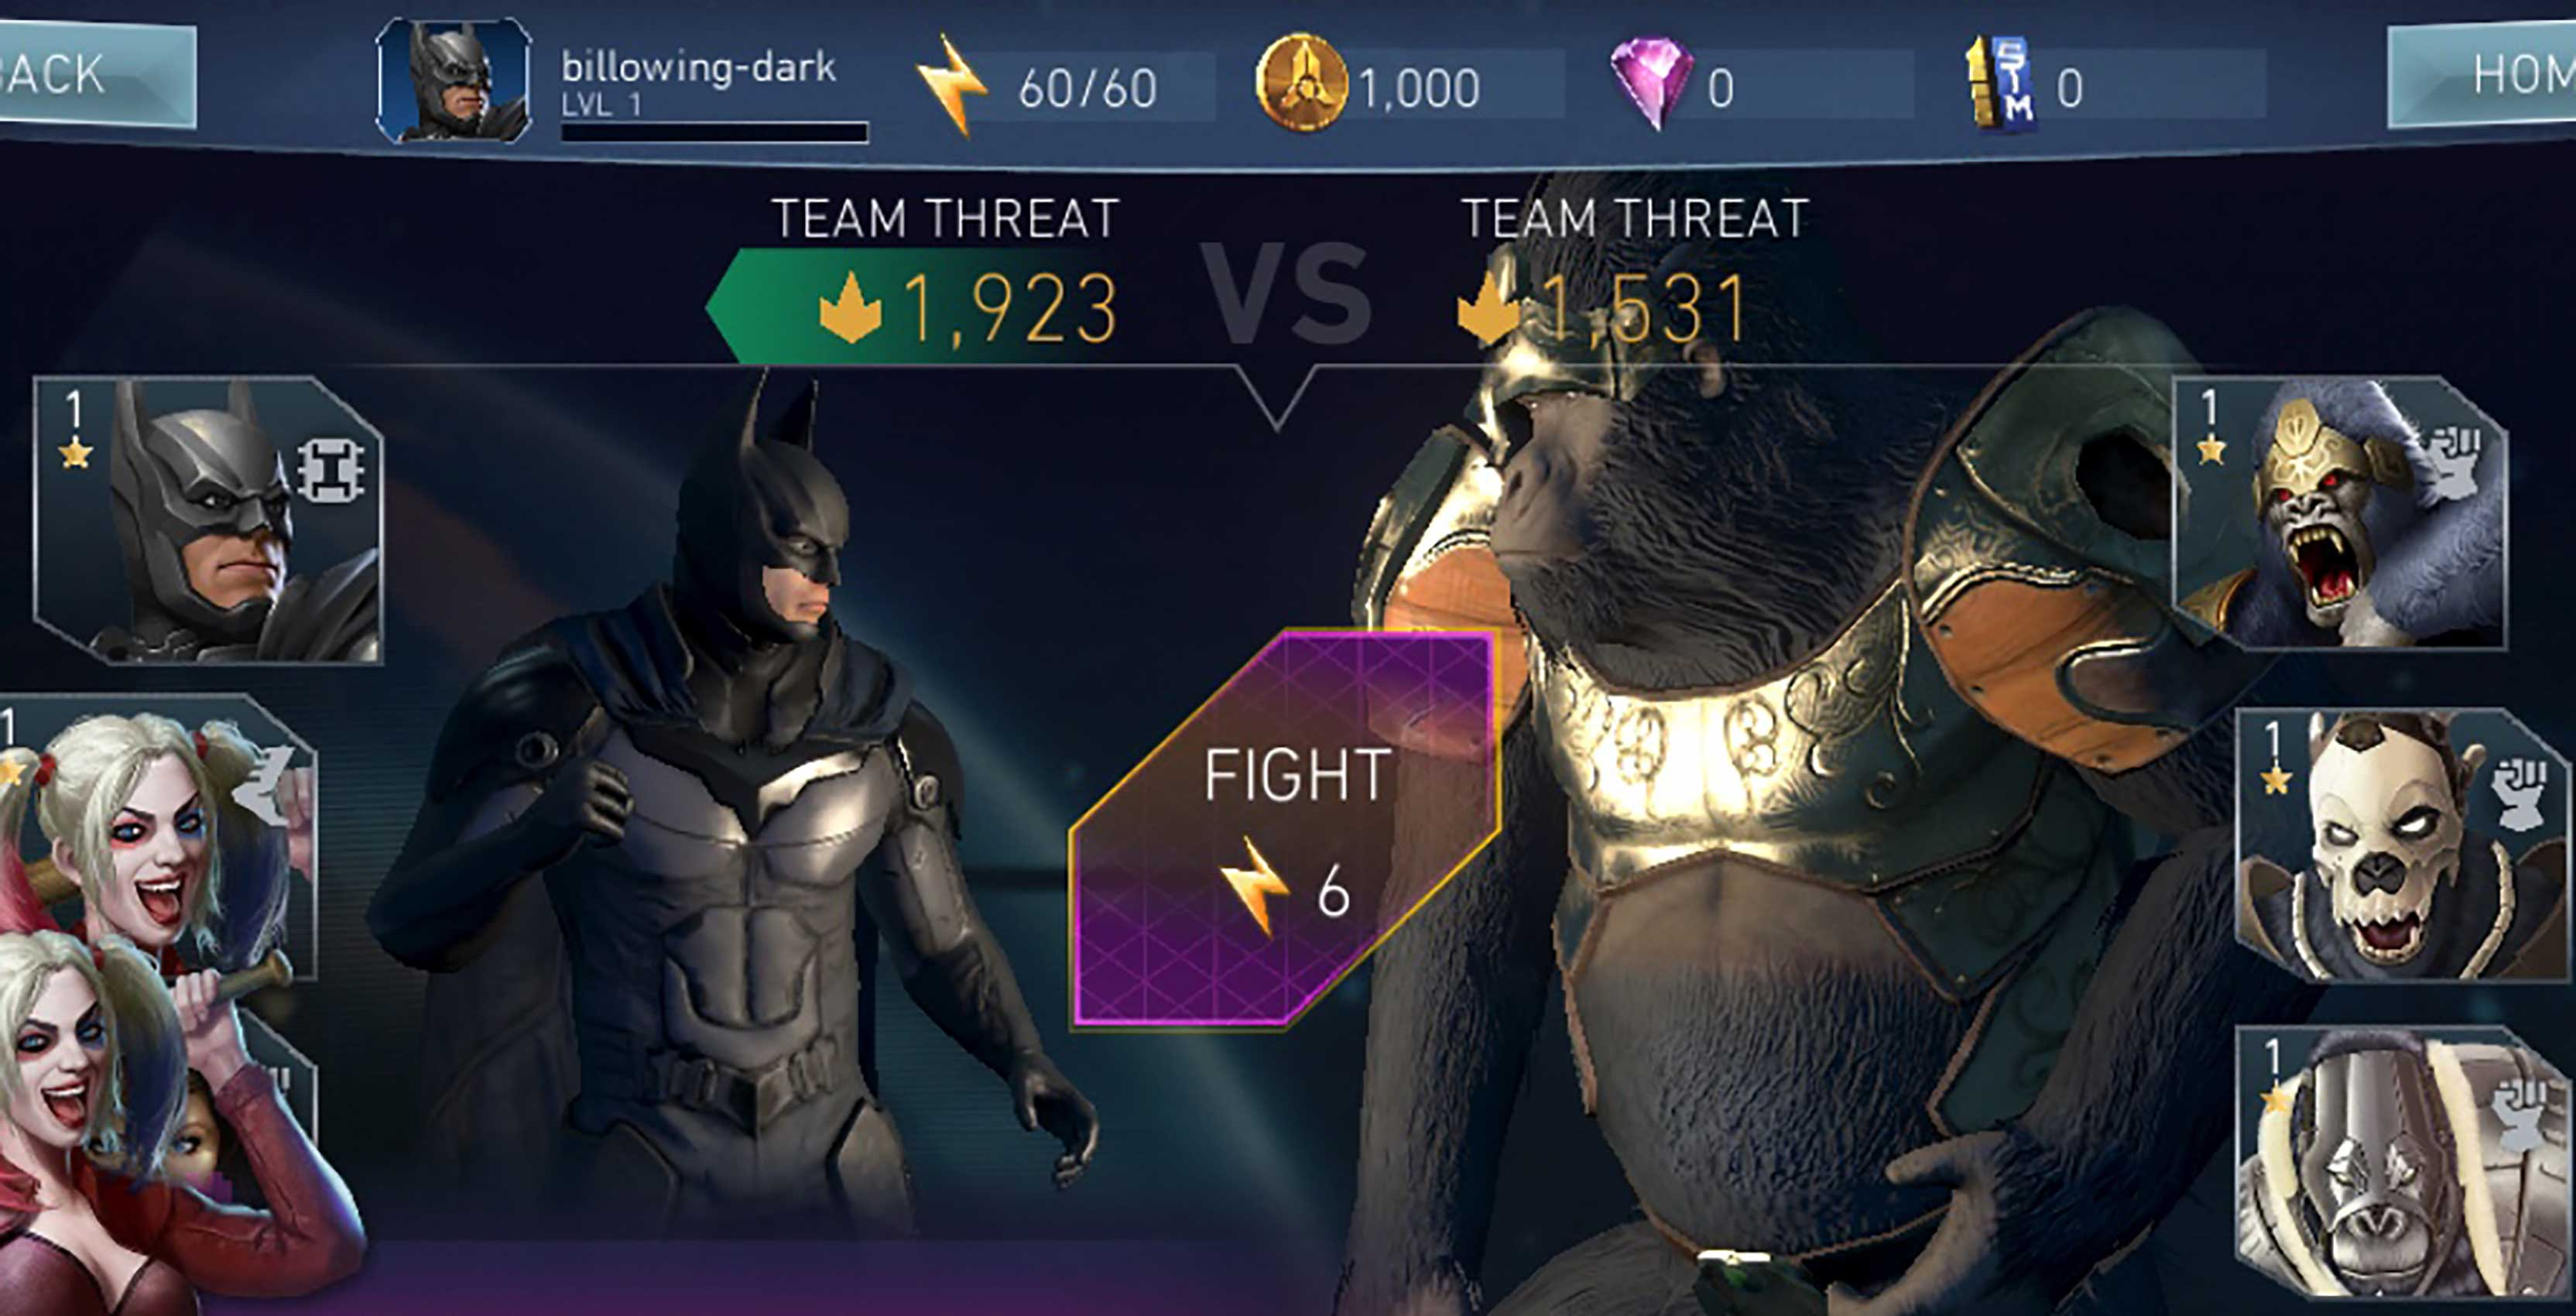 Injustice 2 Mobile Batman vs. Gorilla Grodd